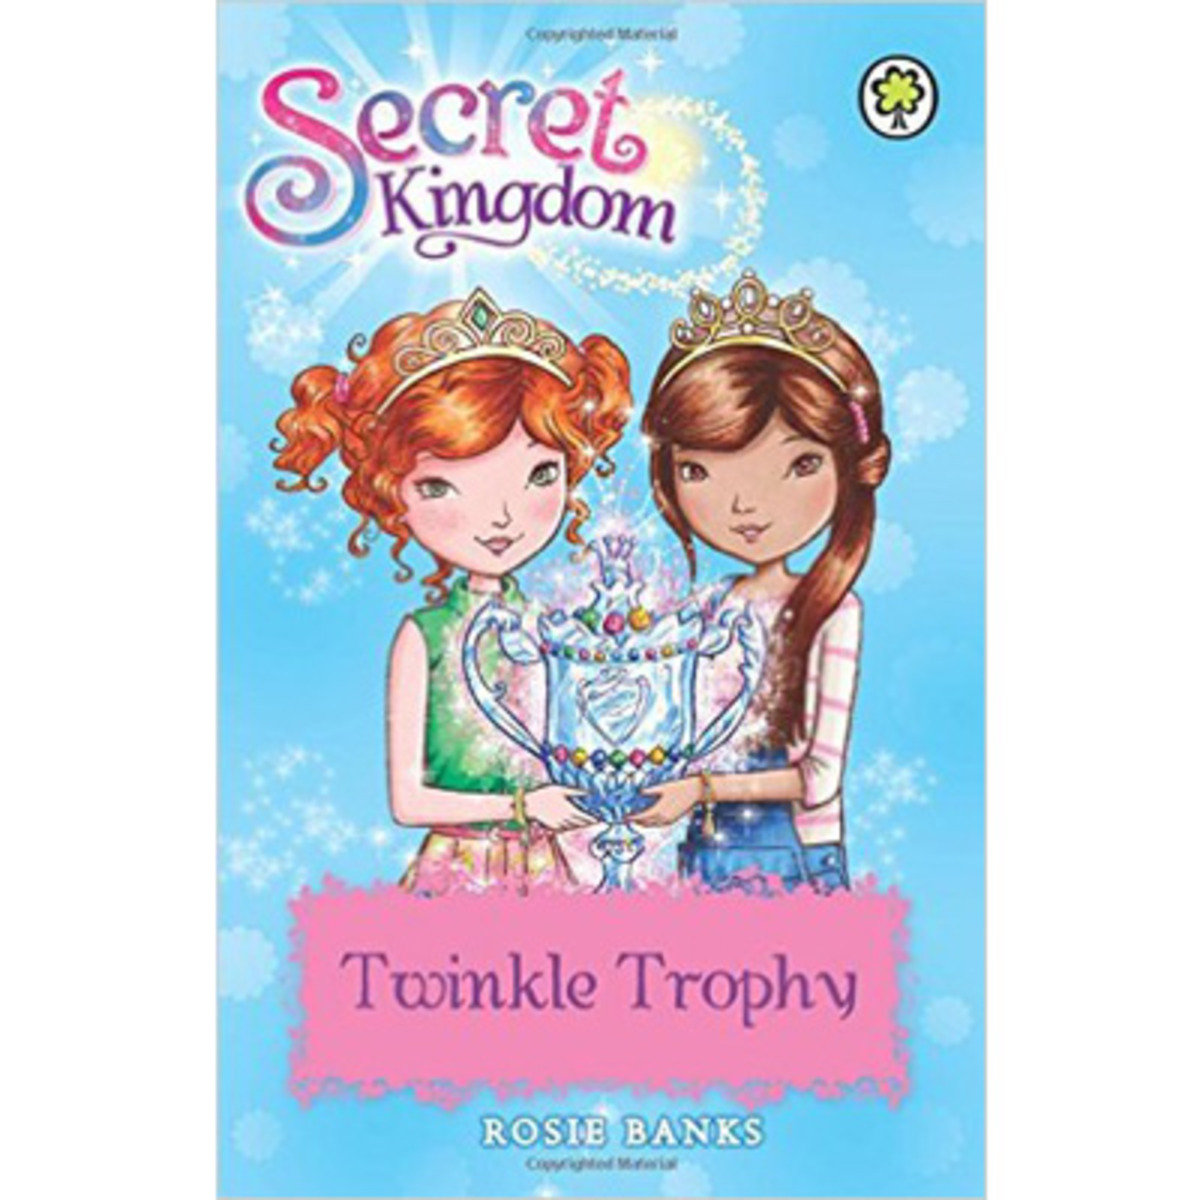 SECRET KINGDOM #30 TWINKLE TROPHY 9781408333051